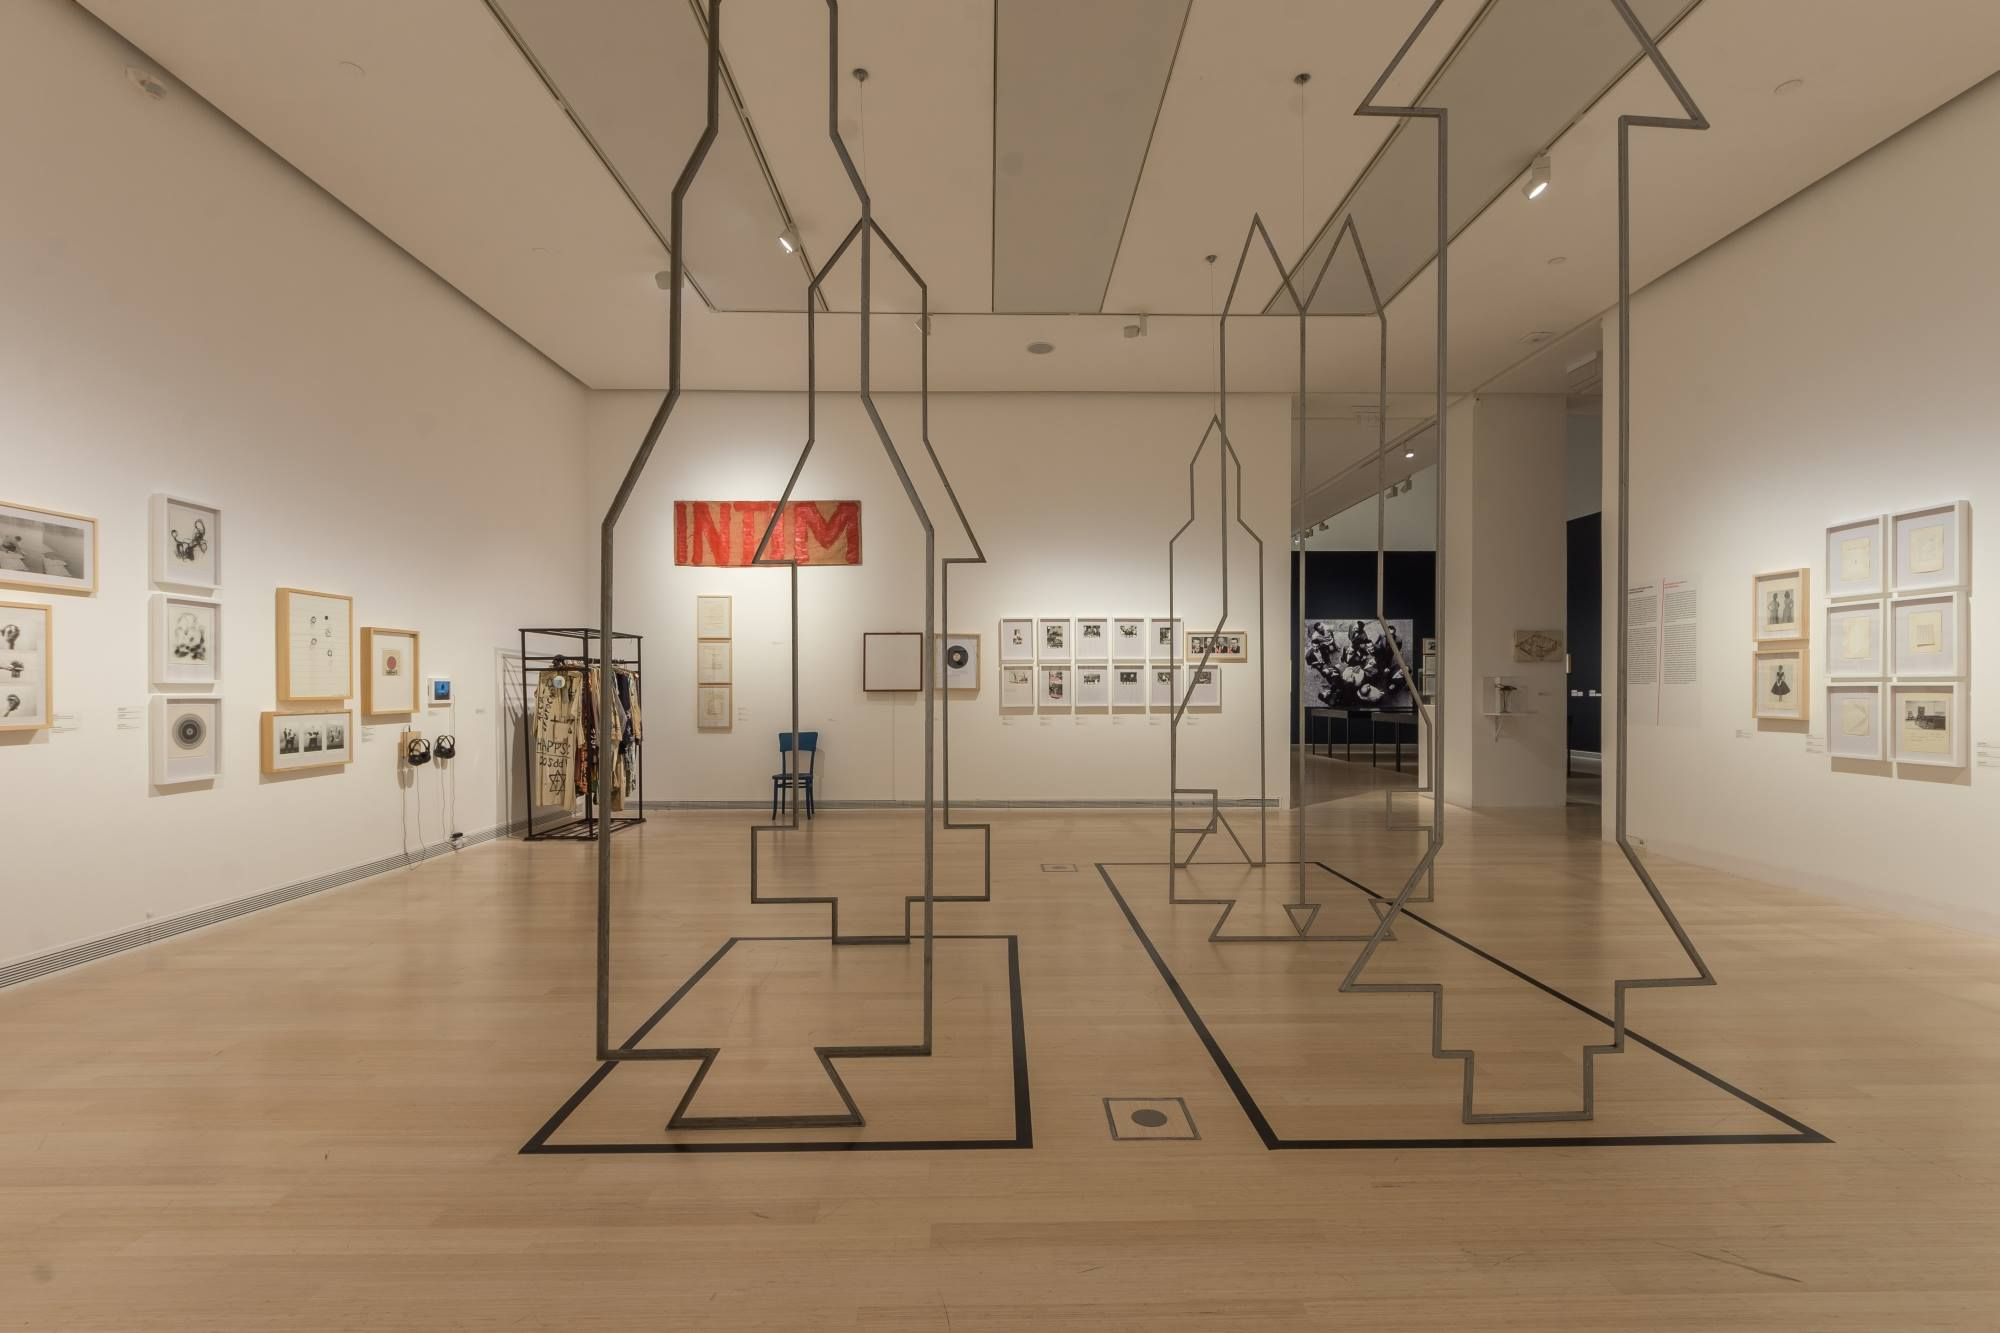 Installation view of the 'Non-Aligned Art. Marinko Sudac Collection' exhibition in Ludwig Museum Budapest, 2017, with works of Stano Filko in the foreground. Courtesy of Marinko Sudac.